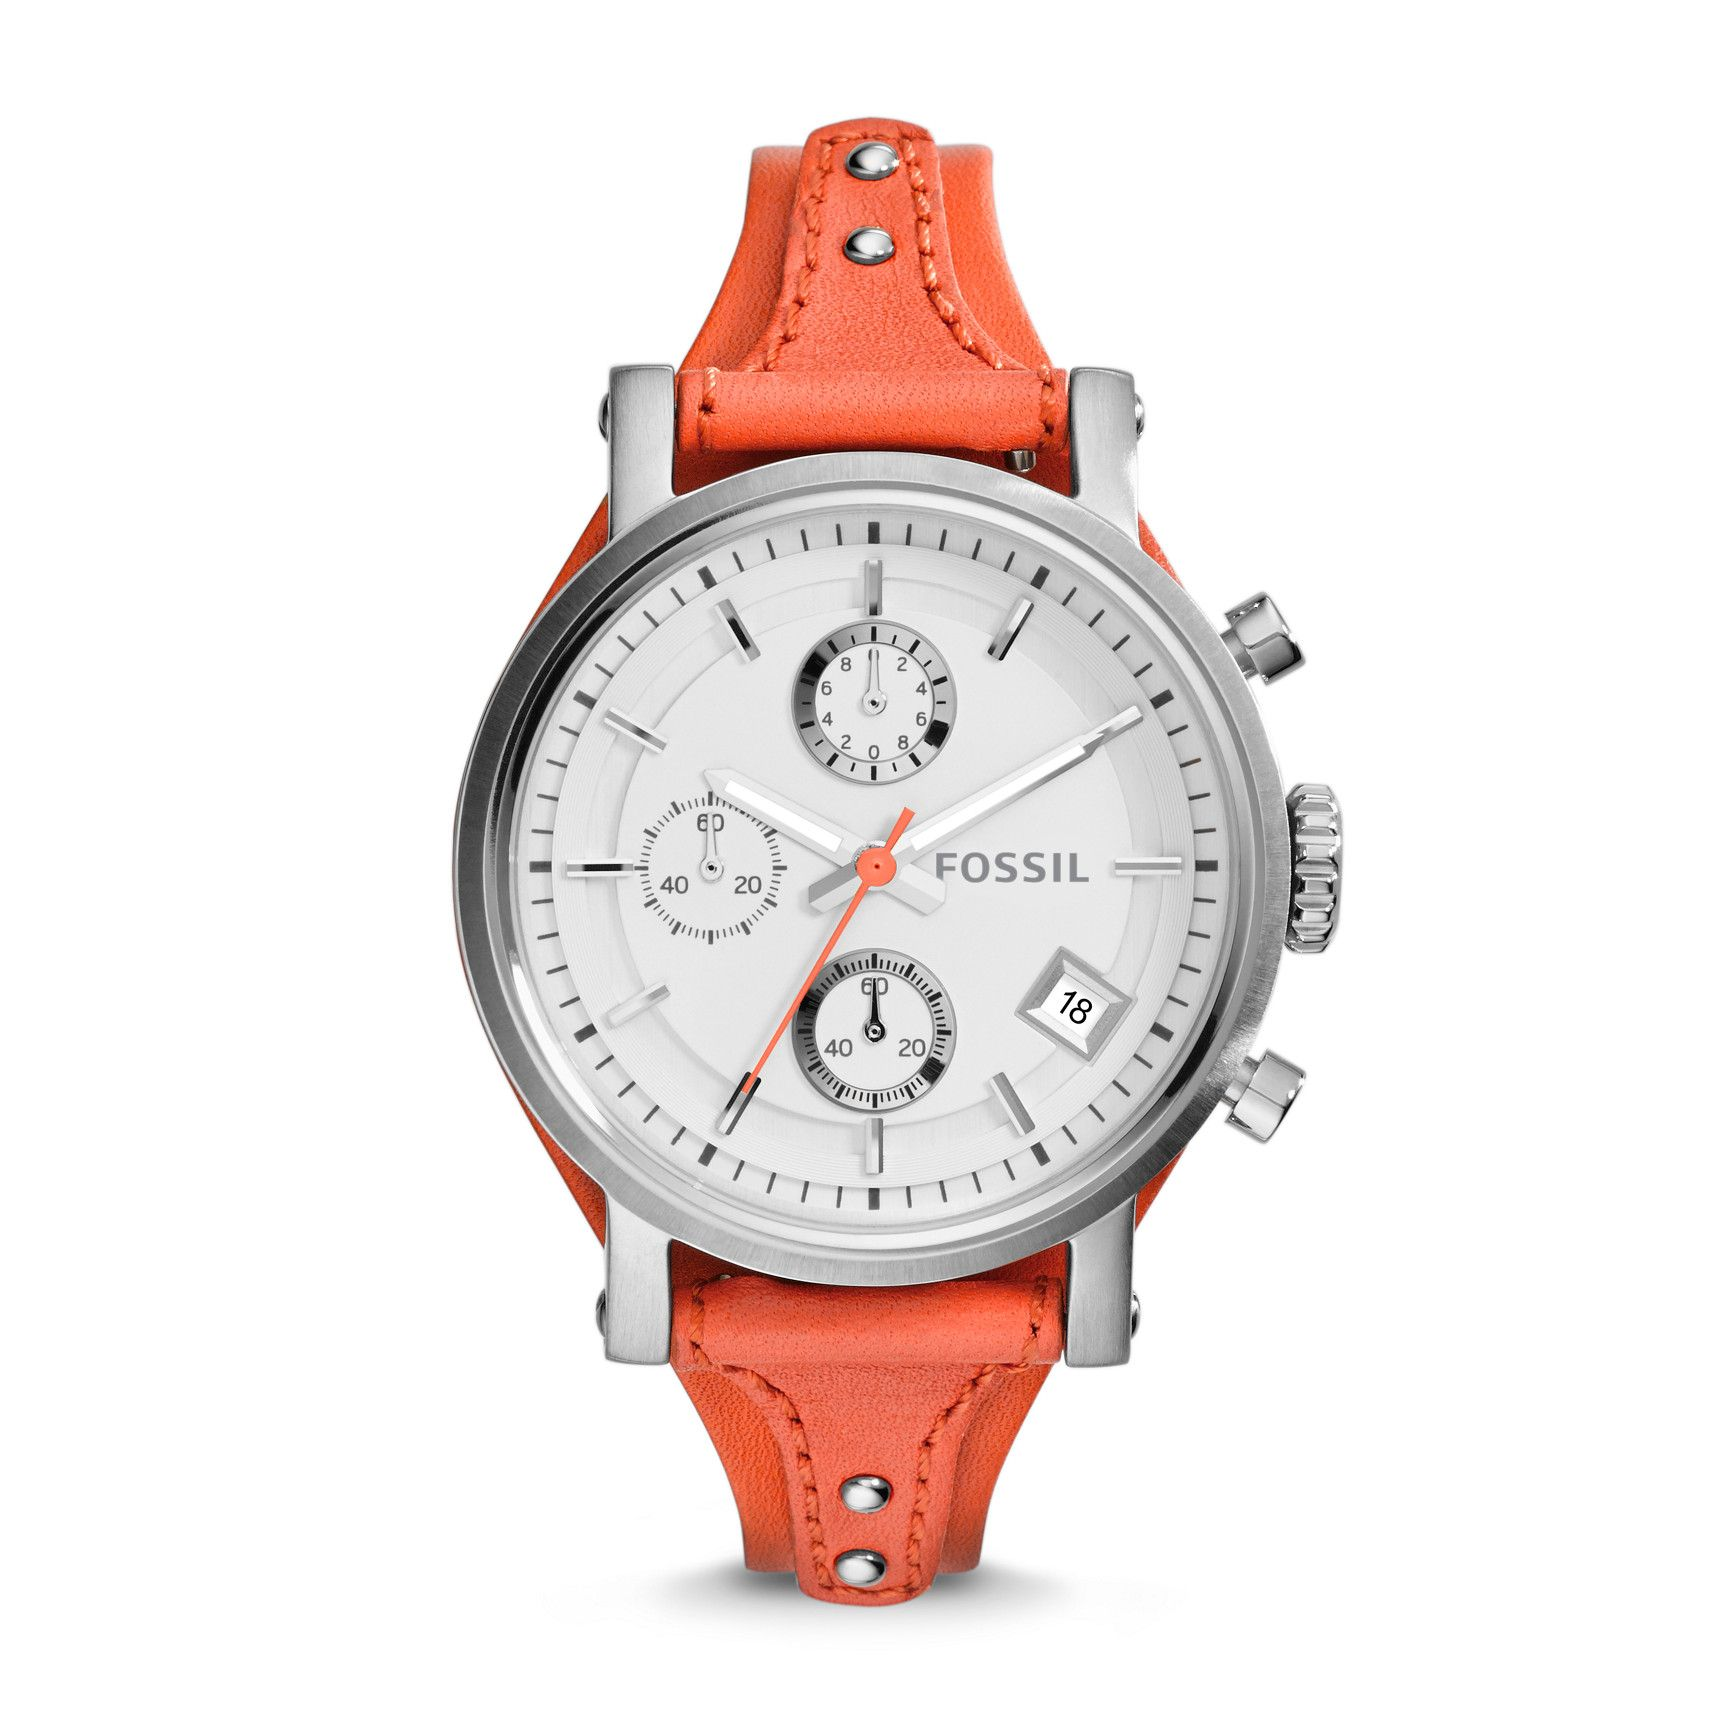 63aecd1d6f5c Fossil Original Boyfriend Chronograph Leather Watch – Monarch Red ...